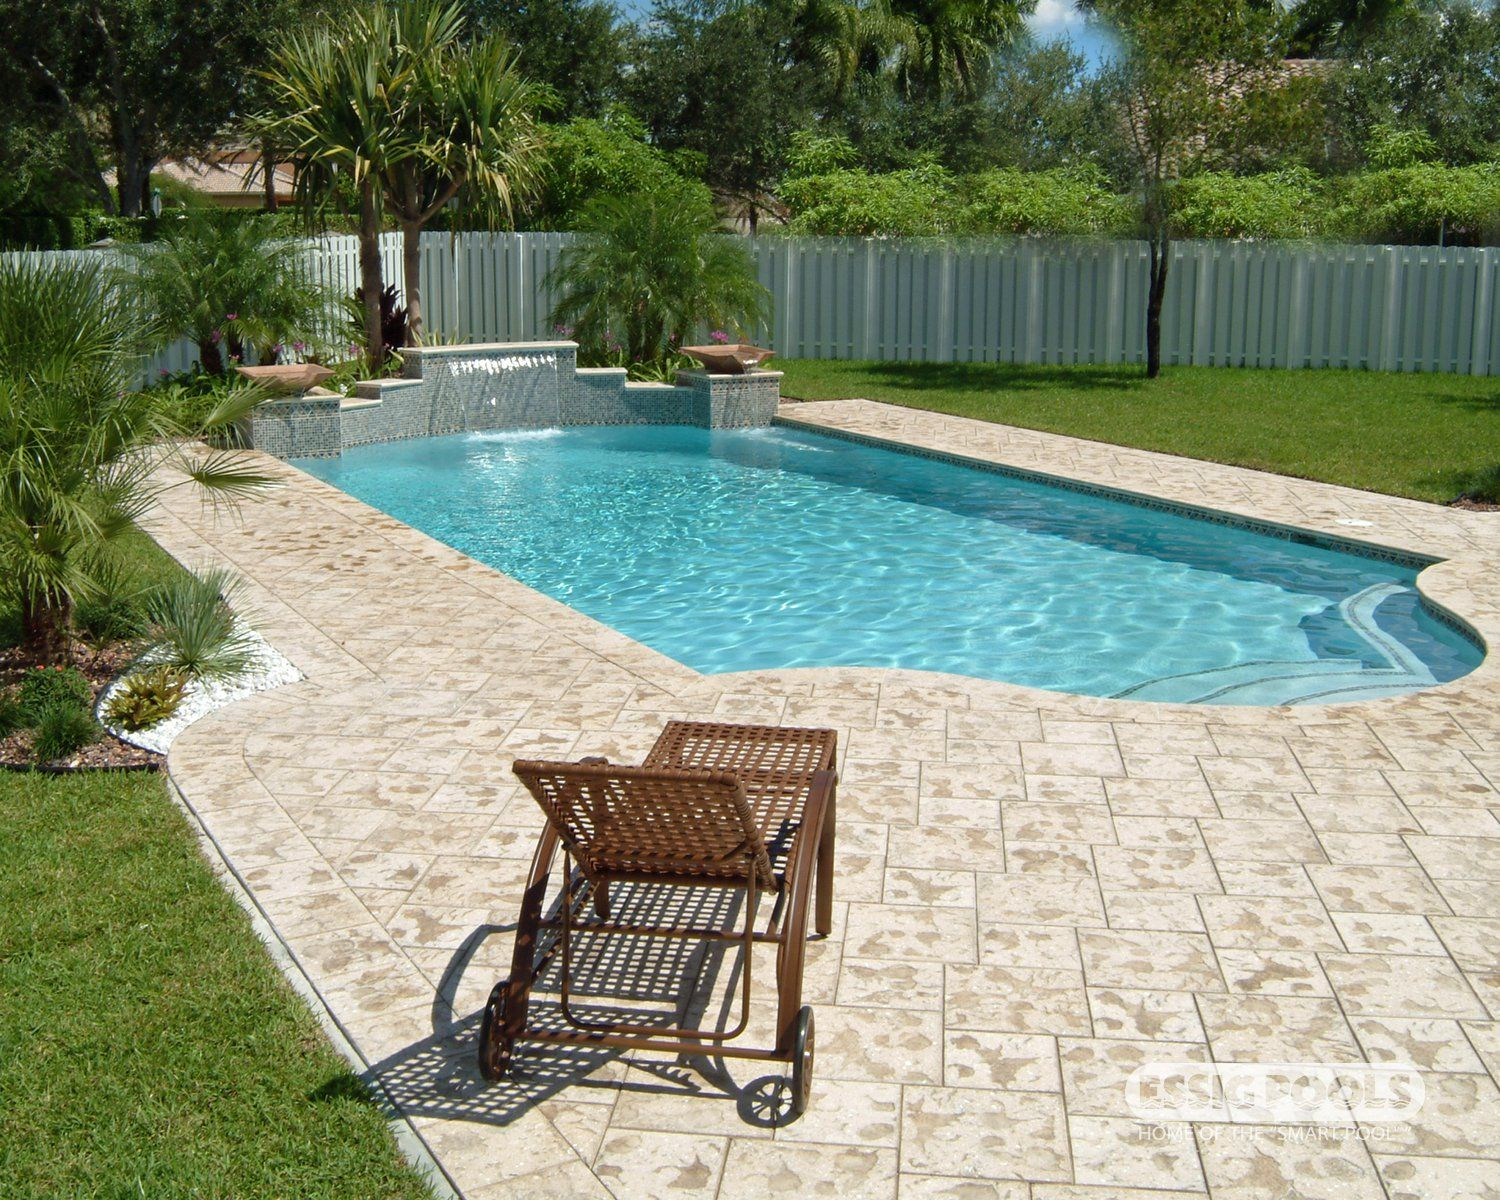 Madeira By Narellan Pools: Pool By Essig Pools Deck By Artistic Paver Mfg. See More